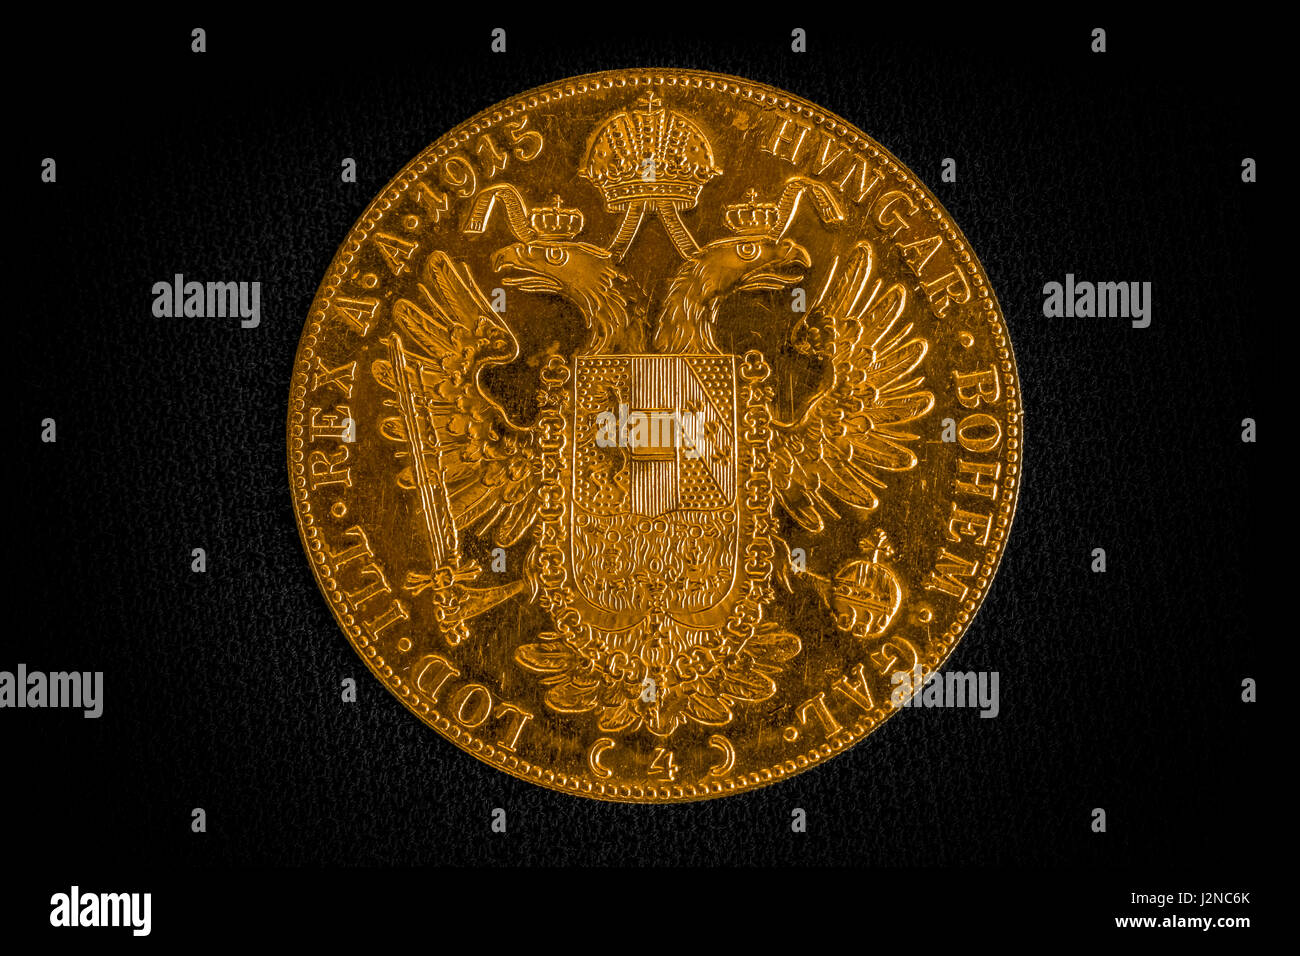 Close-up view of Austria-Hungary thaler, revers of golden coin-ducat from 1915 with Kaiser Franz Joseph I on dark - Stock Image